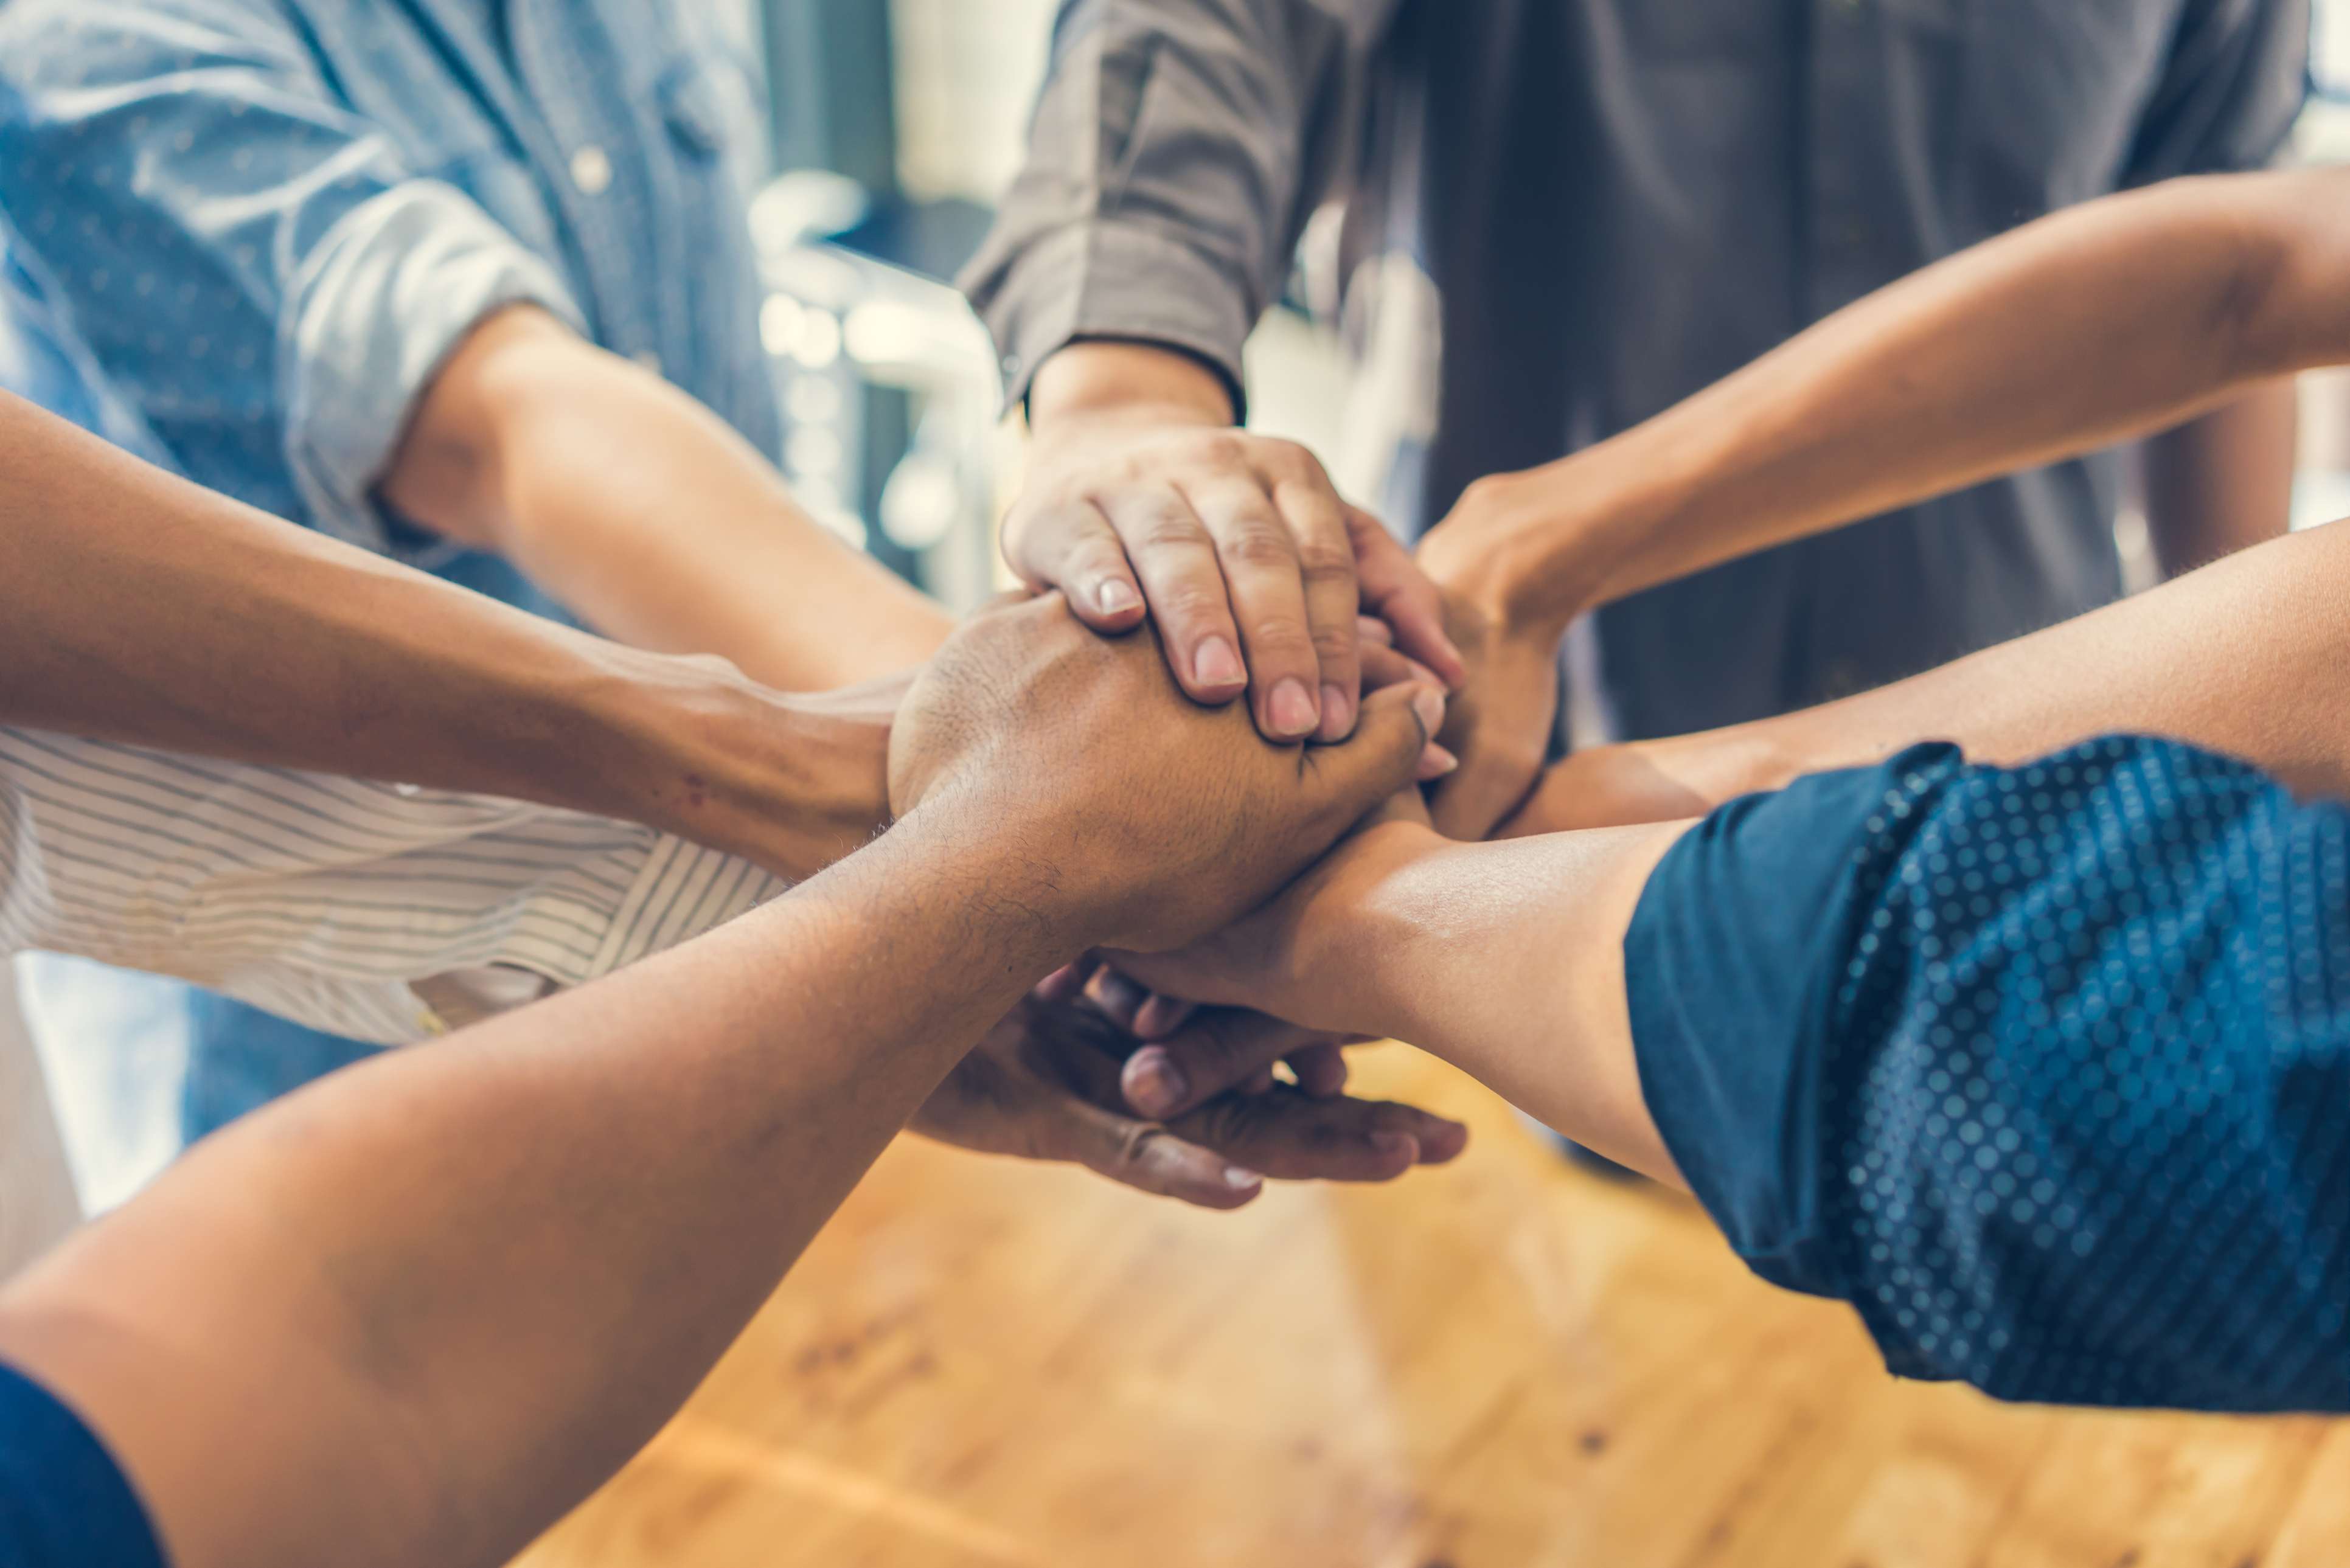 3 Ways to Find Common Ground When Opinions Bring Work Projects to a Halt on coldstonesouthflorida.com